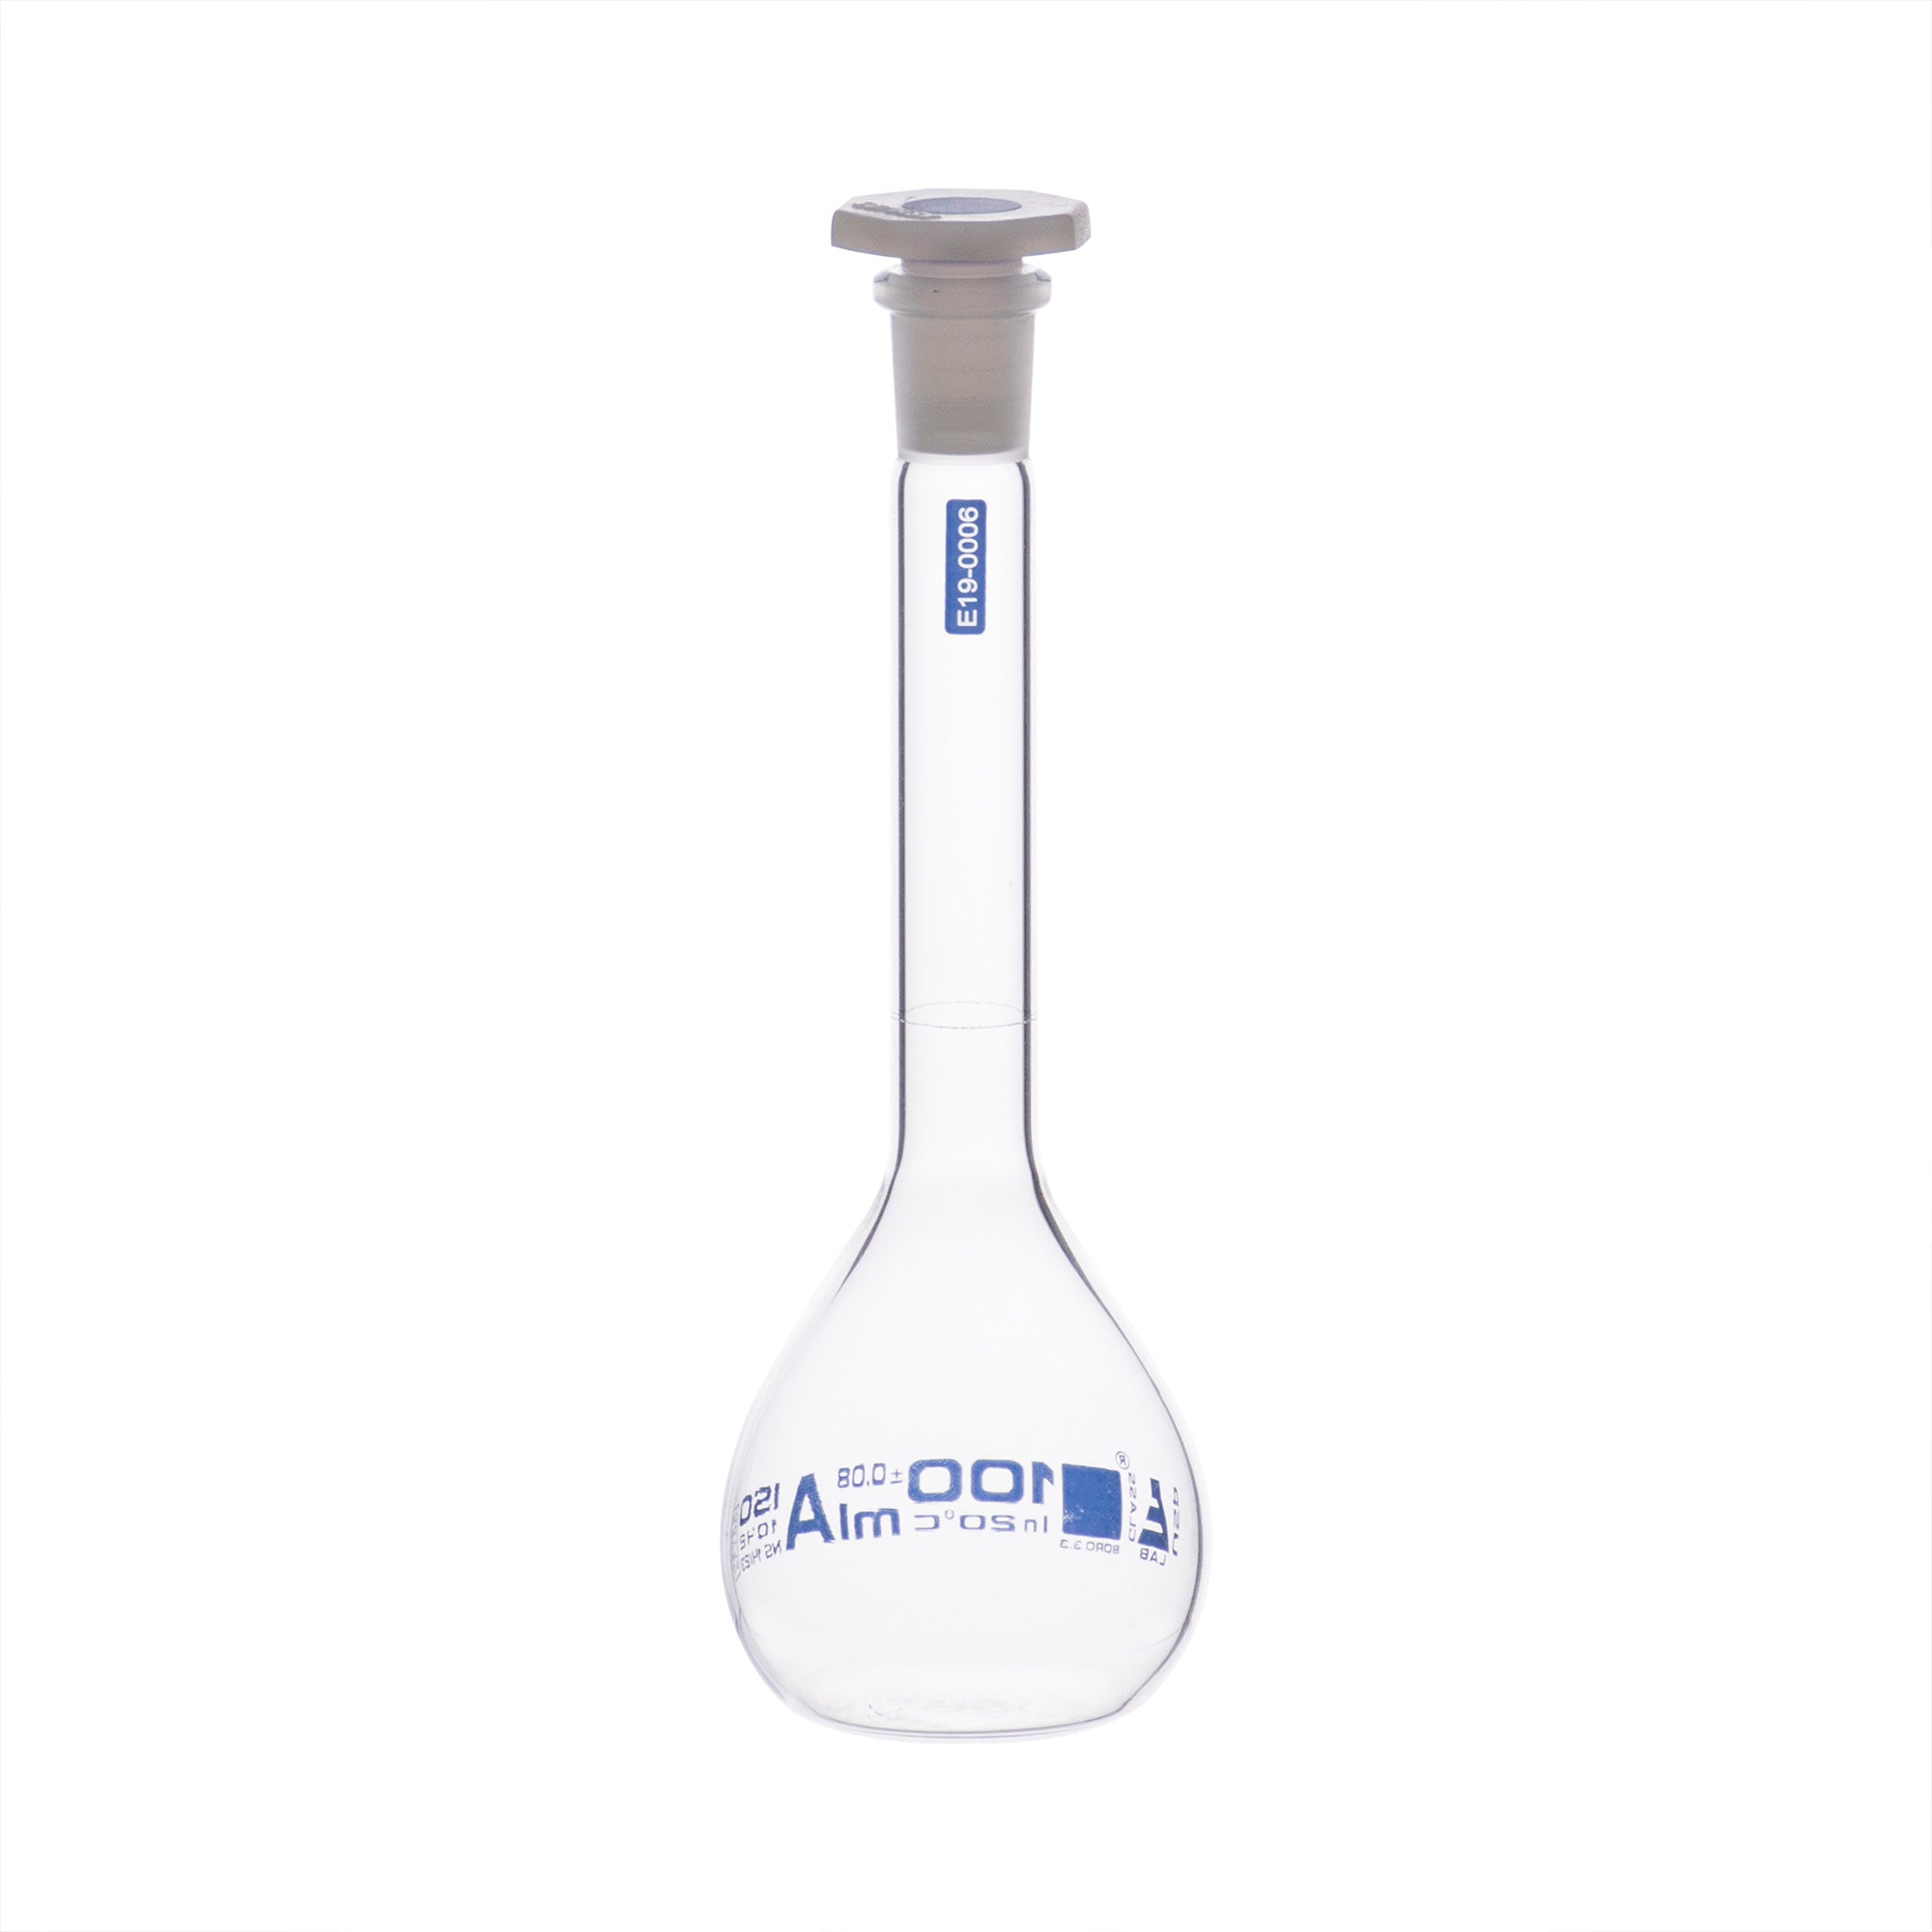 Borosilicate Glass Volumetric Flask with Solid Glass Stopper, 100 ml, USP Class A with Individual Work Certificate,  Pack of 2, Autoclavable